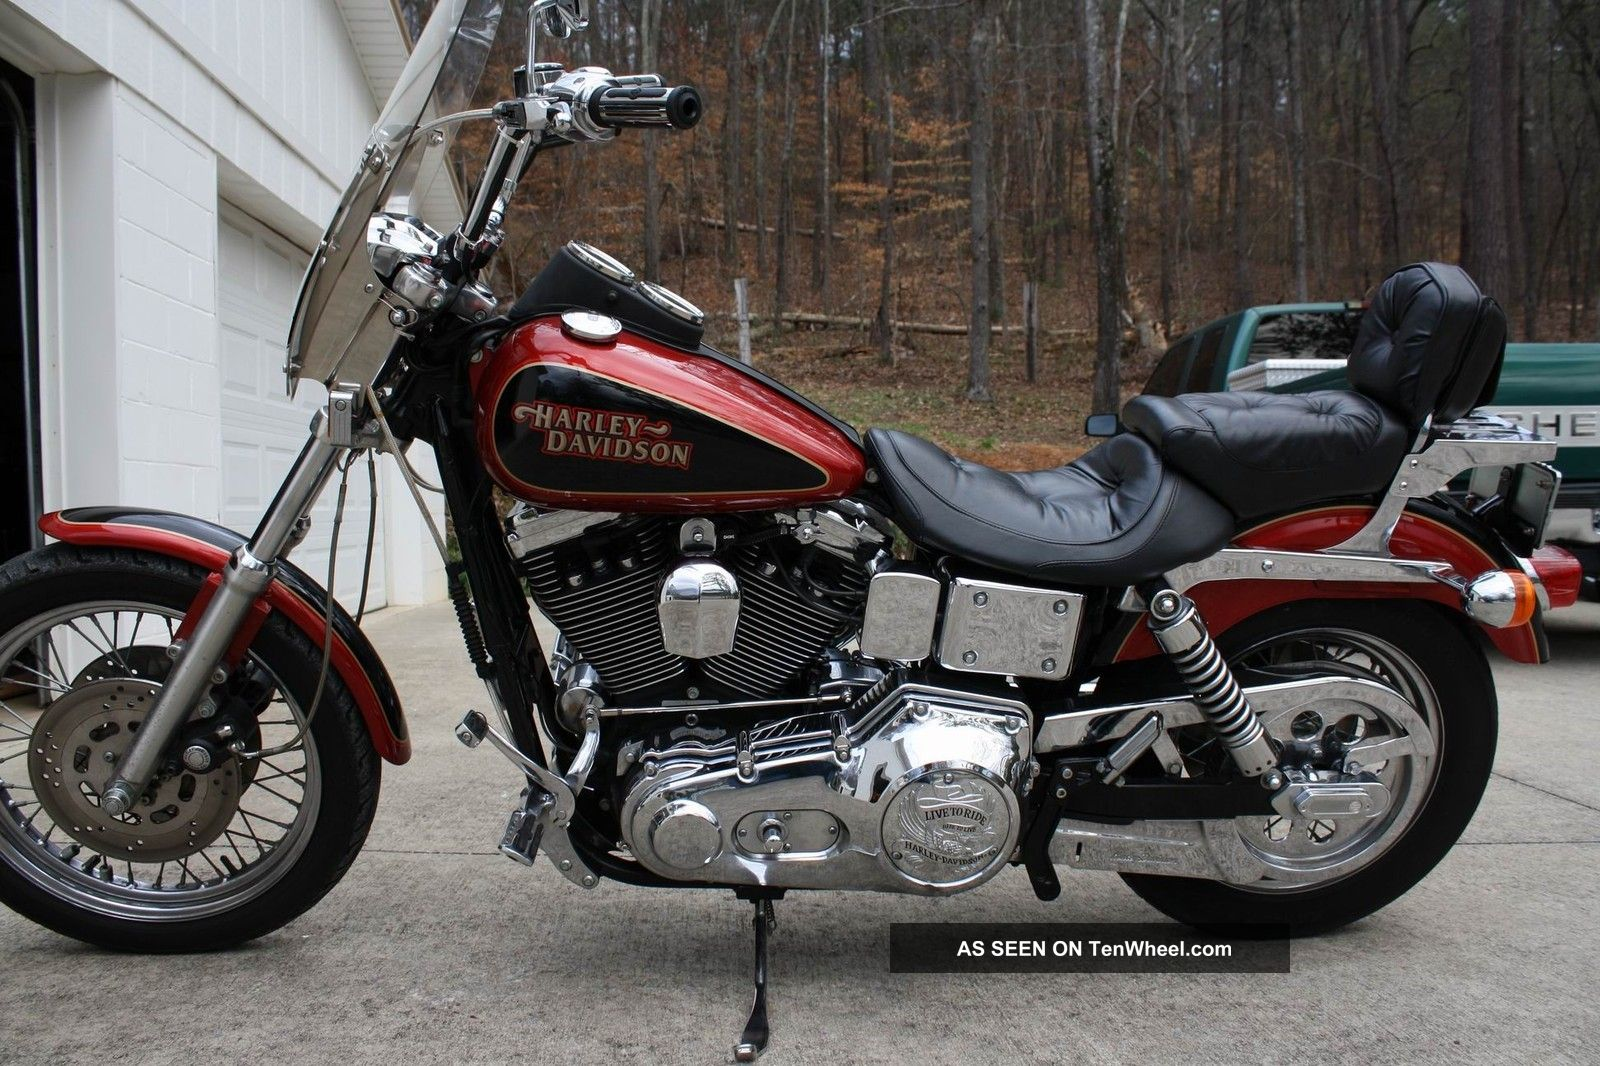 DYNA LOW RIDER ,combien sommes nous ? - Page 13 Harleydavidson-1340-dyna-low-rider-4